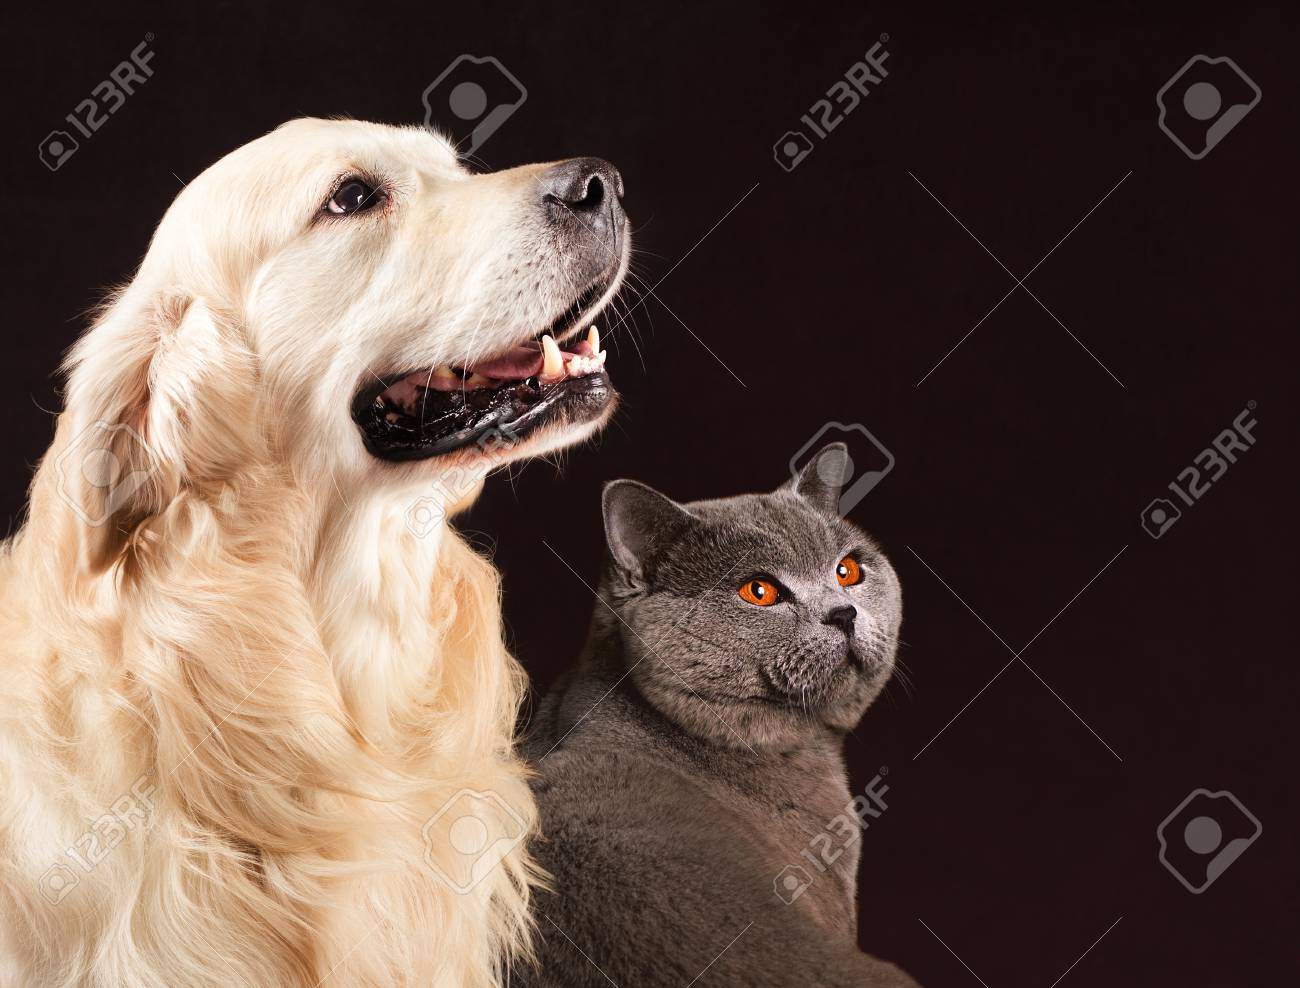 Cat and dog, British Shorthair and golden retriever looks at